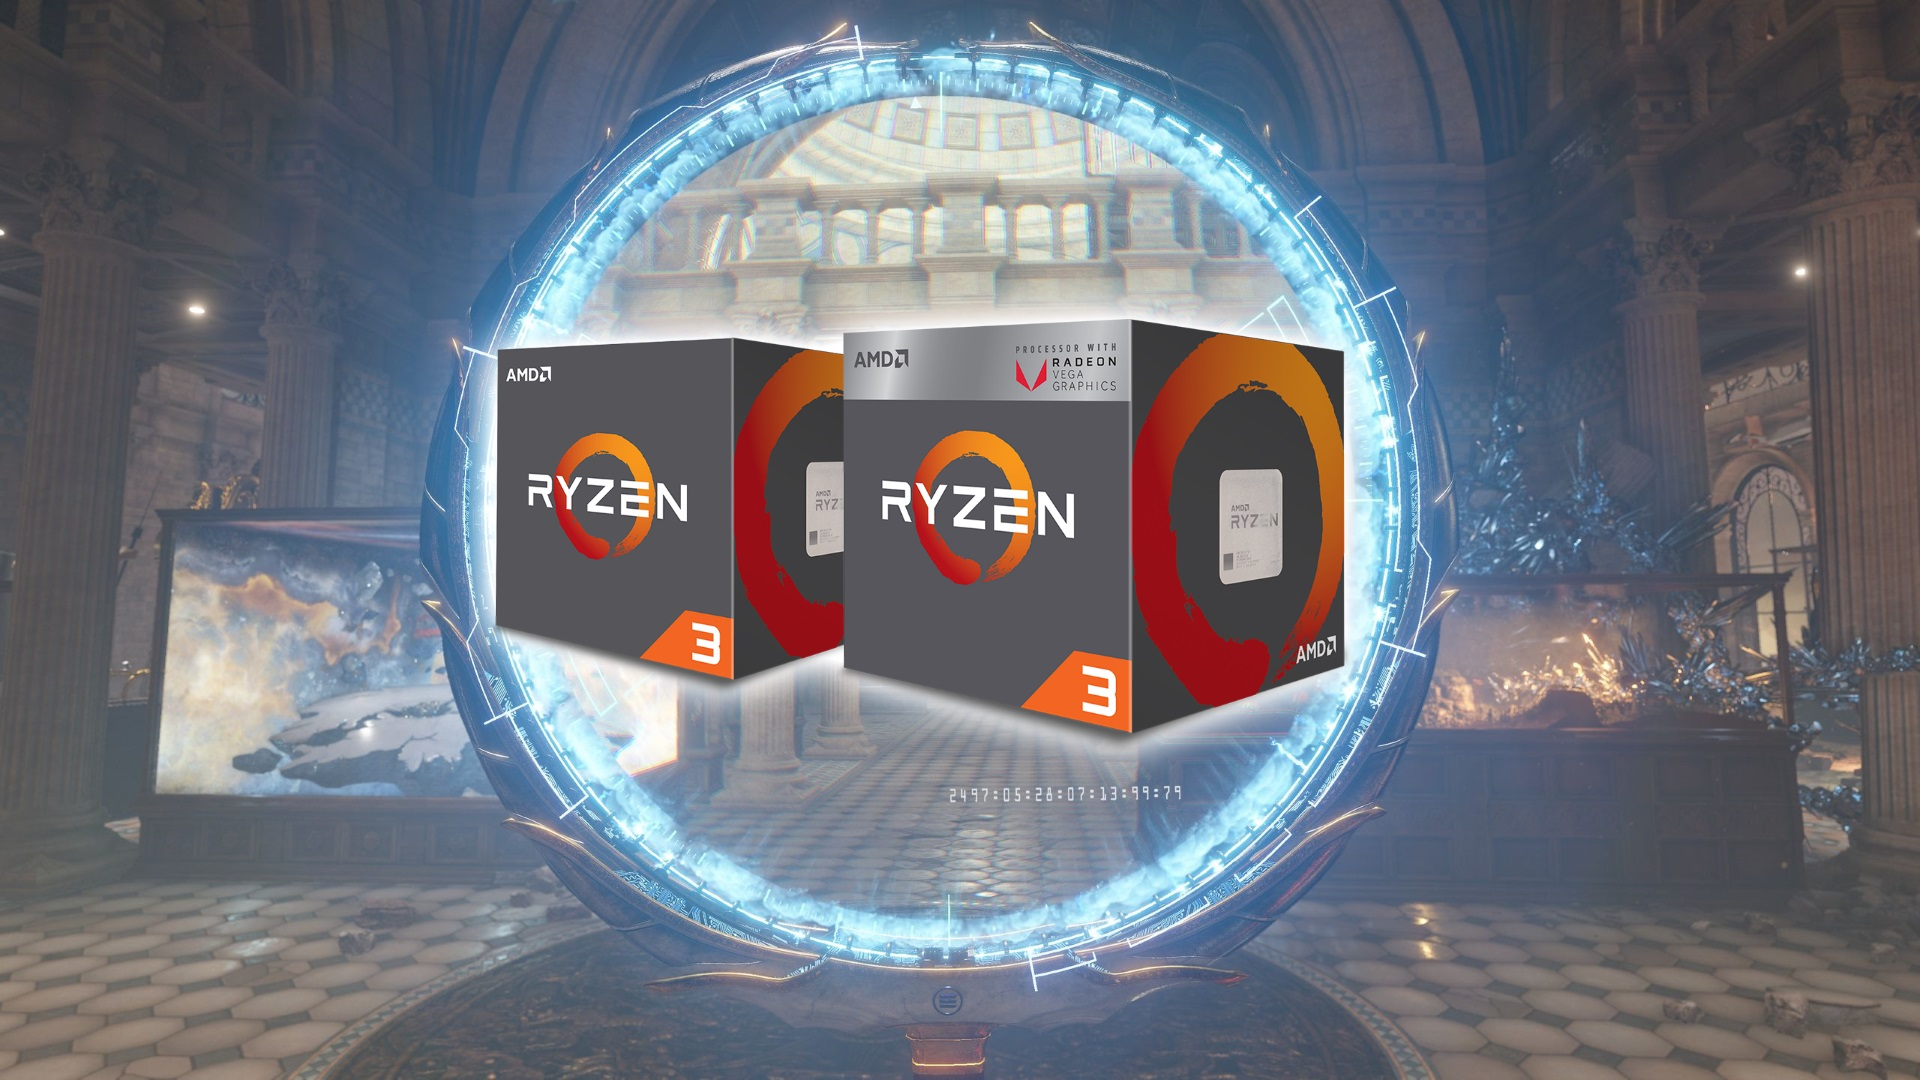 Amd Ryzen 5 2400g 3dmark Performance Leak Ahead Of Launch With Radeon Rx Vega 11 Graphics